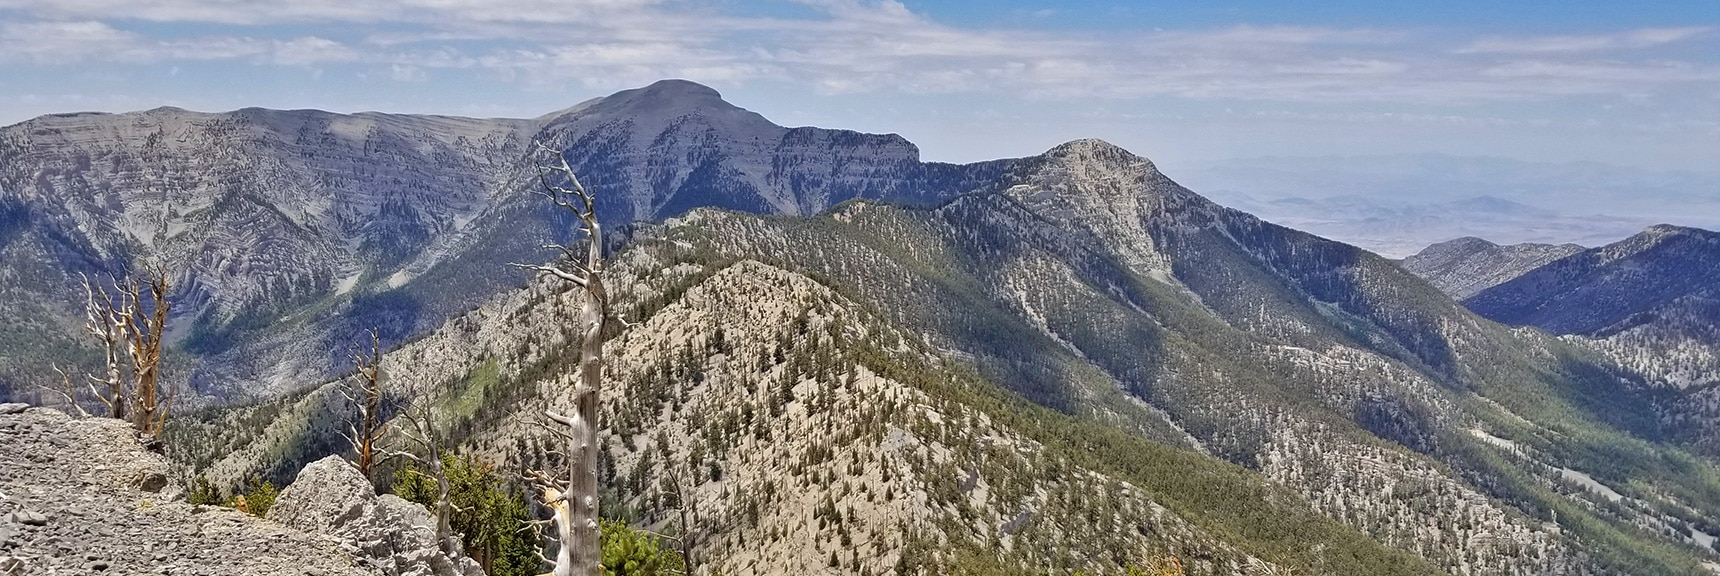 The North Ridge of Kyle Canyon is an Upper Approach to Lee Peak and Charleston Peak | Mummy Mountain NW Cliffs | Mt Charleston Wilderness | Spring Mountains, Nevada